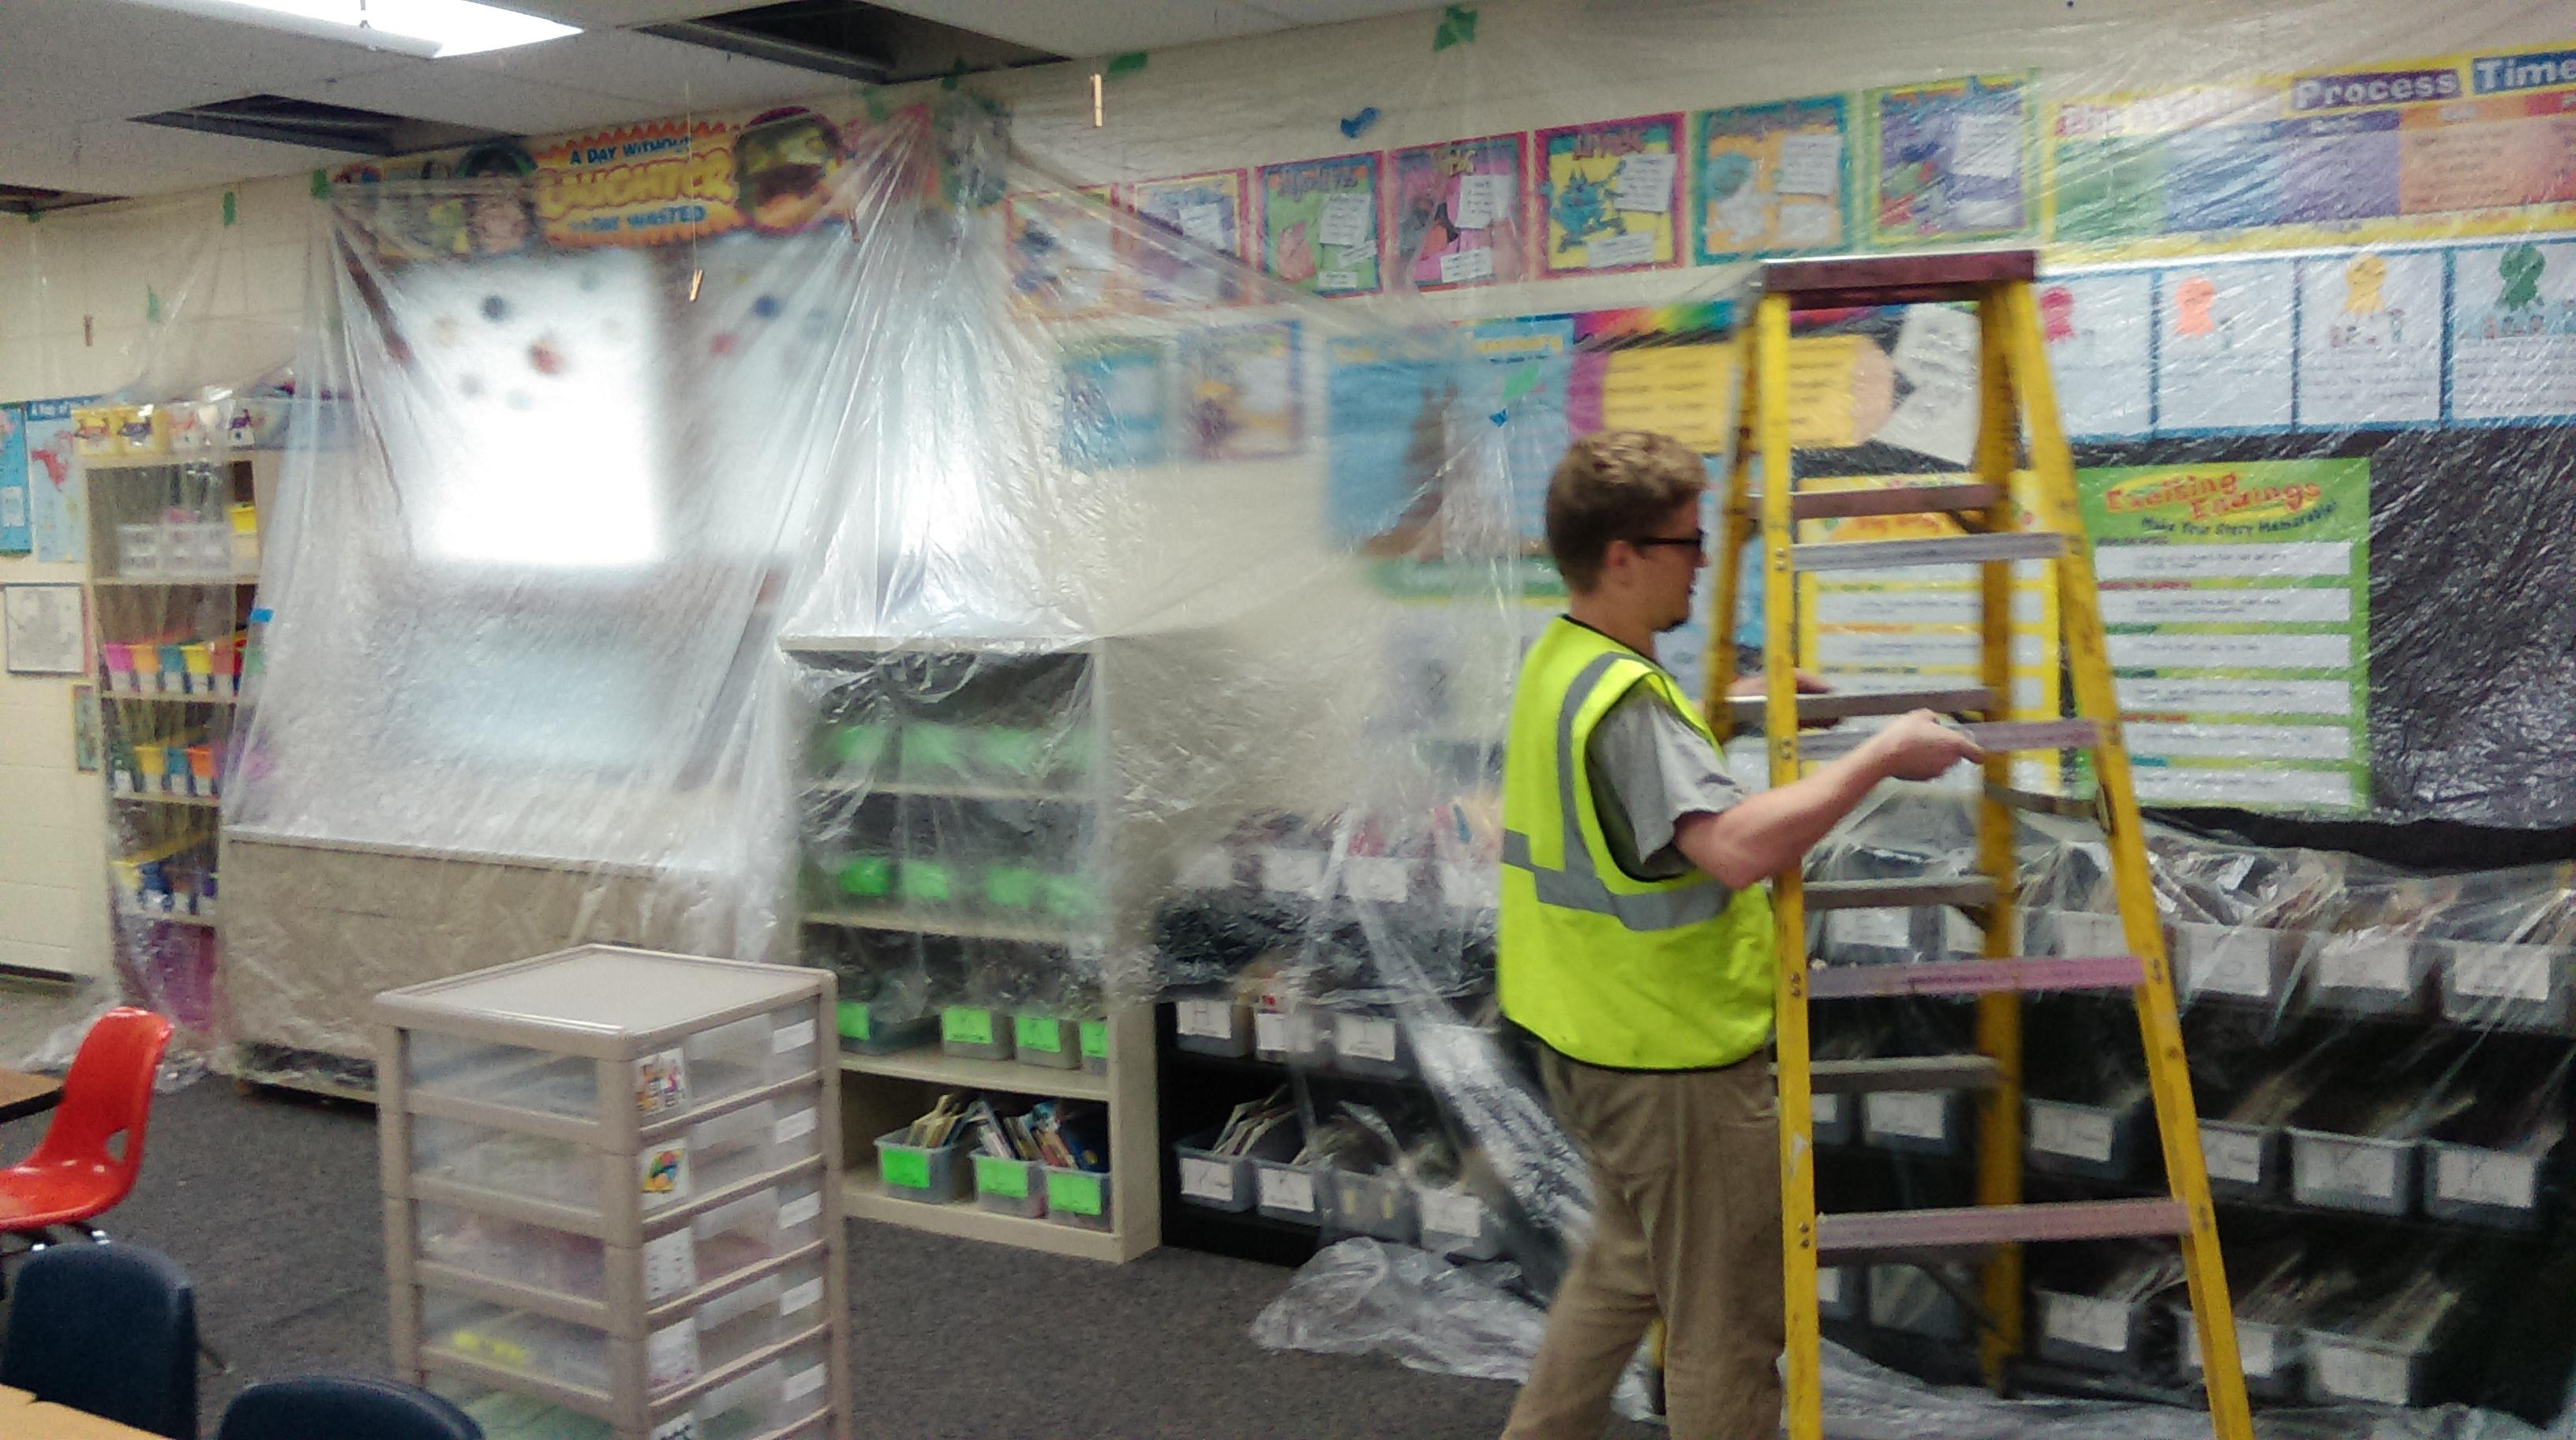 Accurate-Airtight Exteriors worker putting plastic up in a classroom to keep everything clean